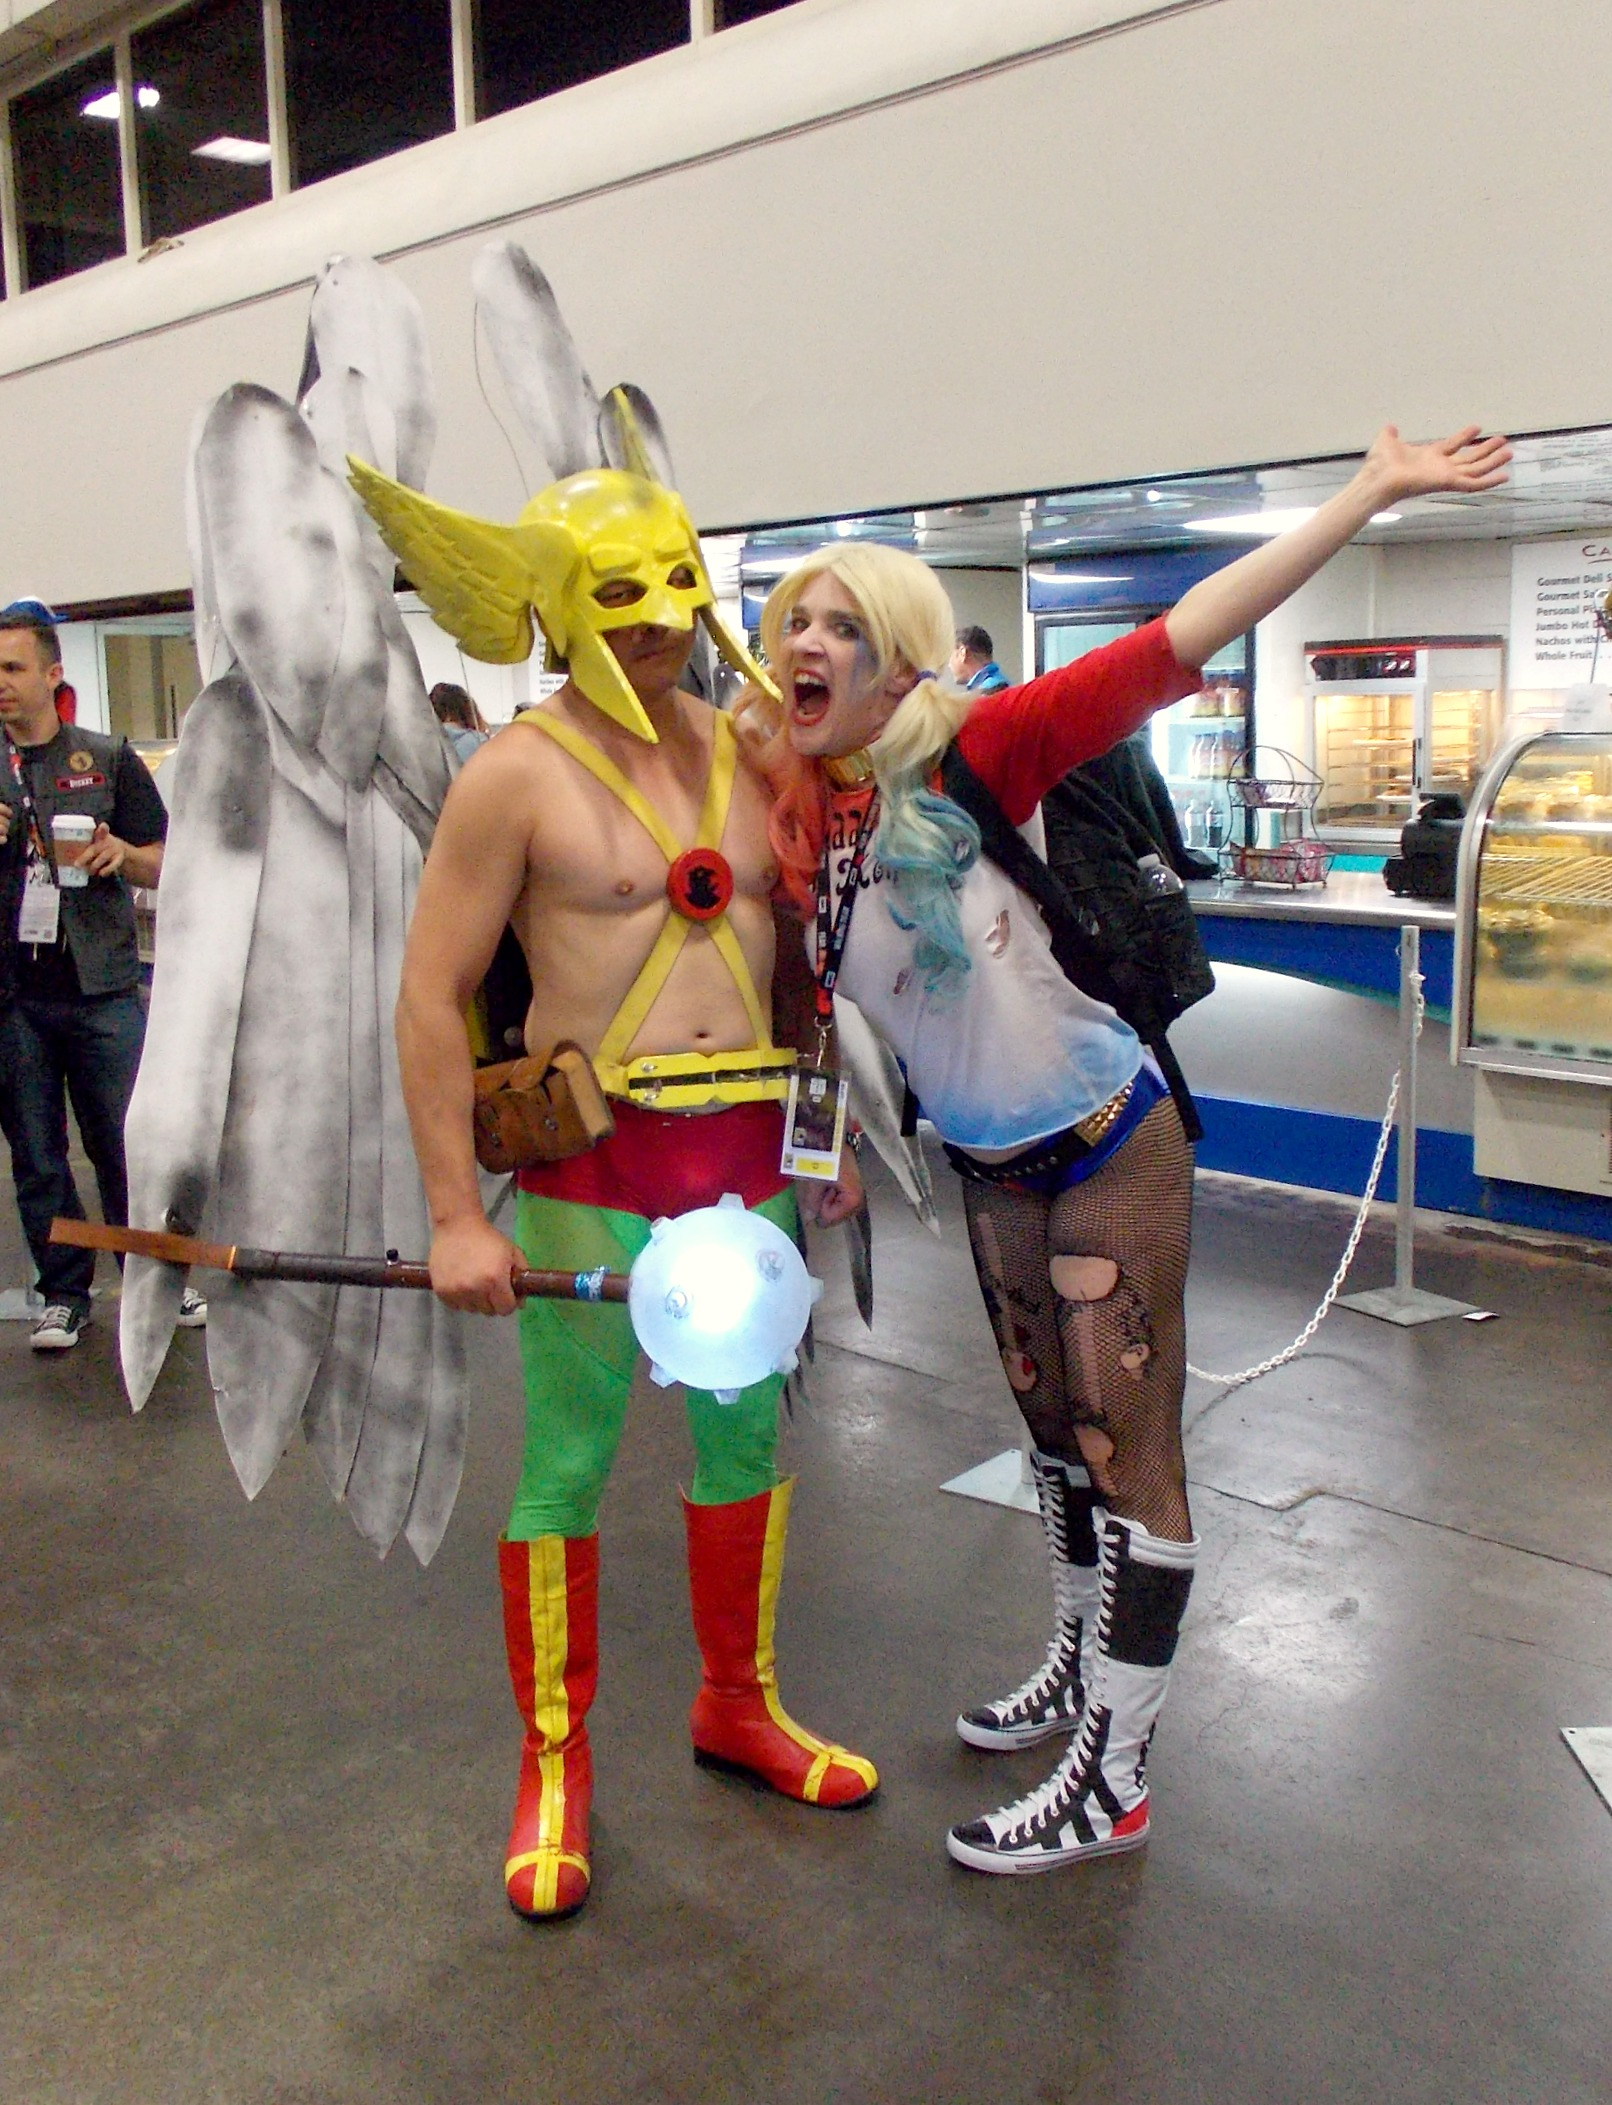 Hawkman and Harley